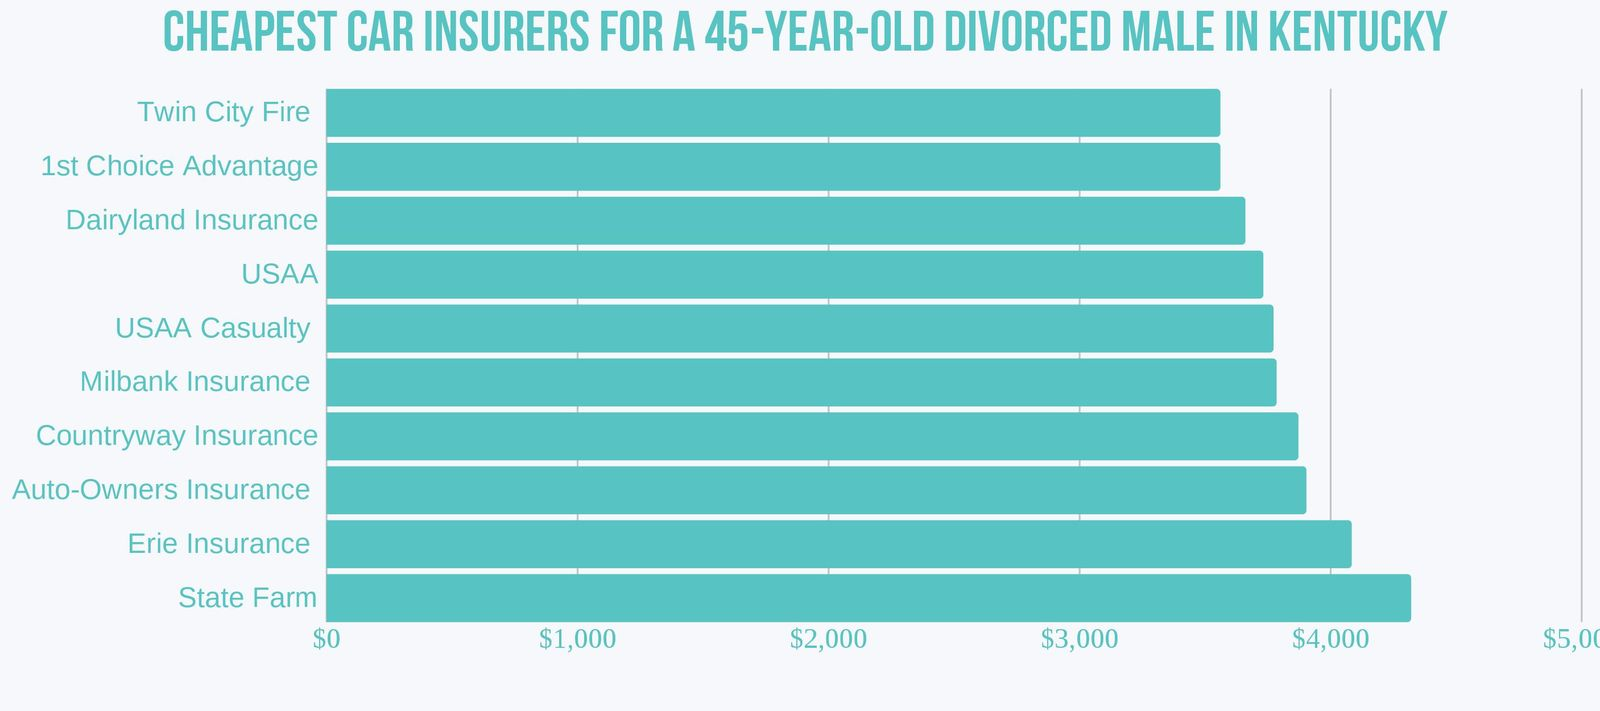 Kentucky's cheapest insurers for 45-year-old divorced male